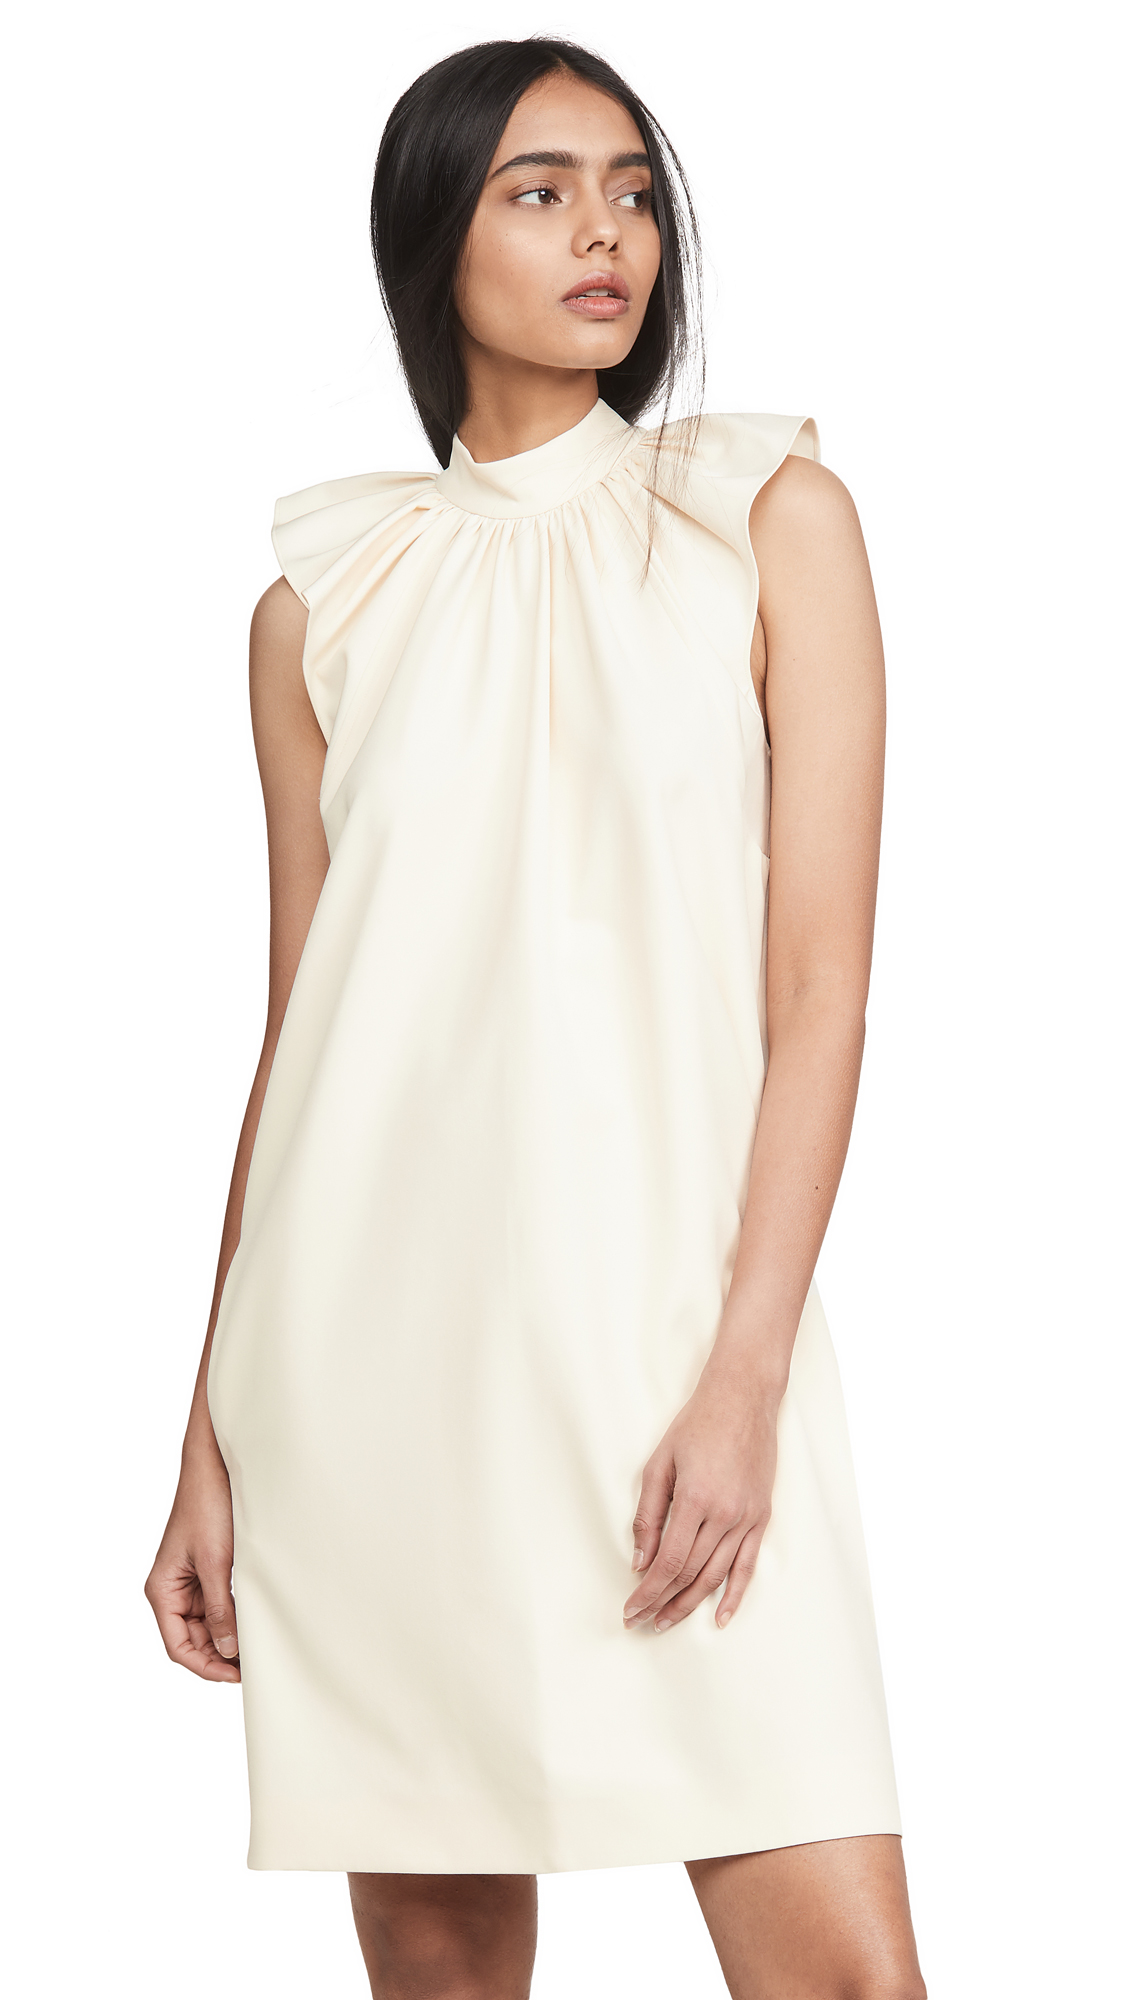 Victoria Victoria Beckham Ruched Shoulder Sleeveless Dress - 30% Off Sale